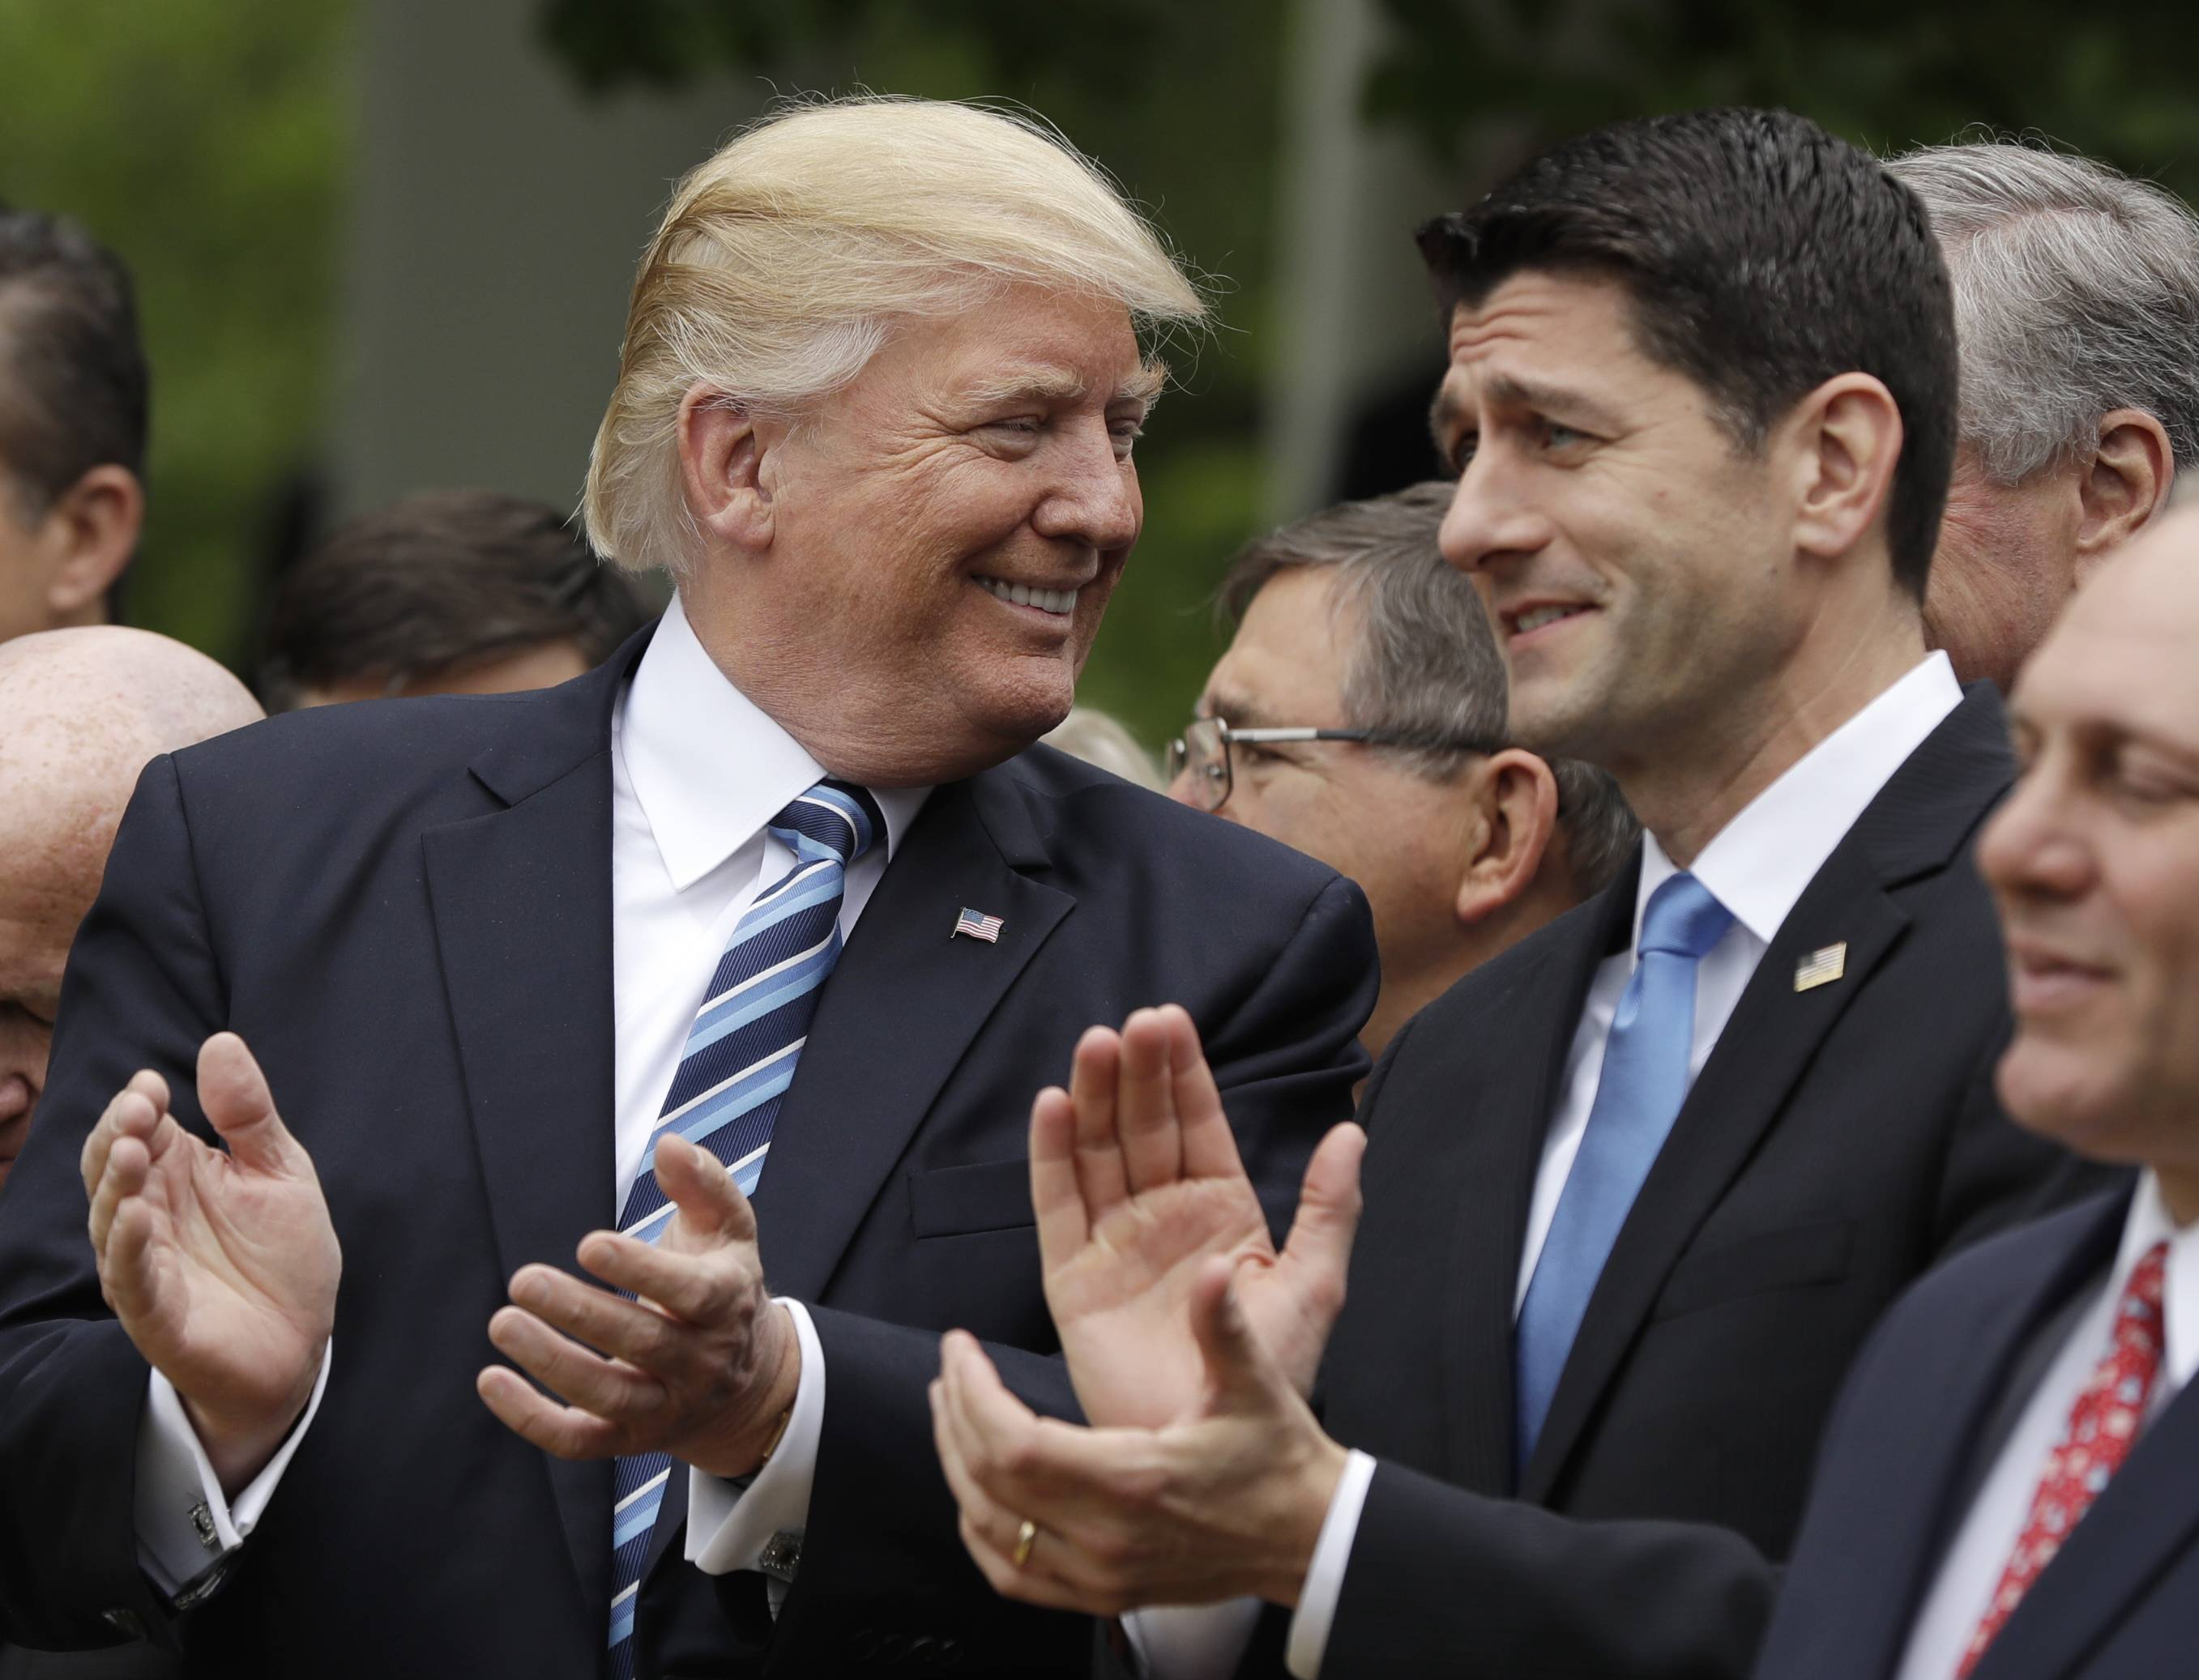 President Donald Trump talks with House Speaker Paul Ryan in the White House Rose Garden after the GOP pushed a health care bill through the House.